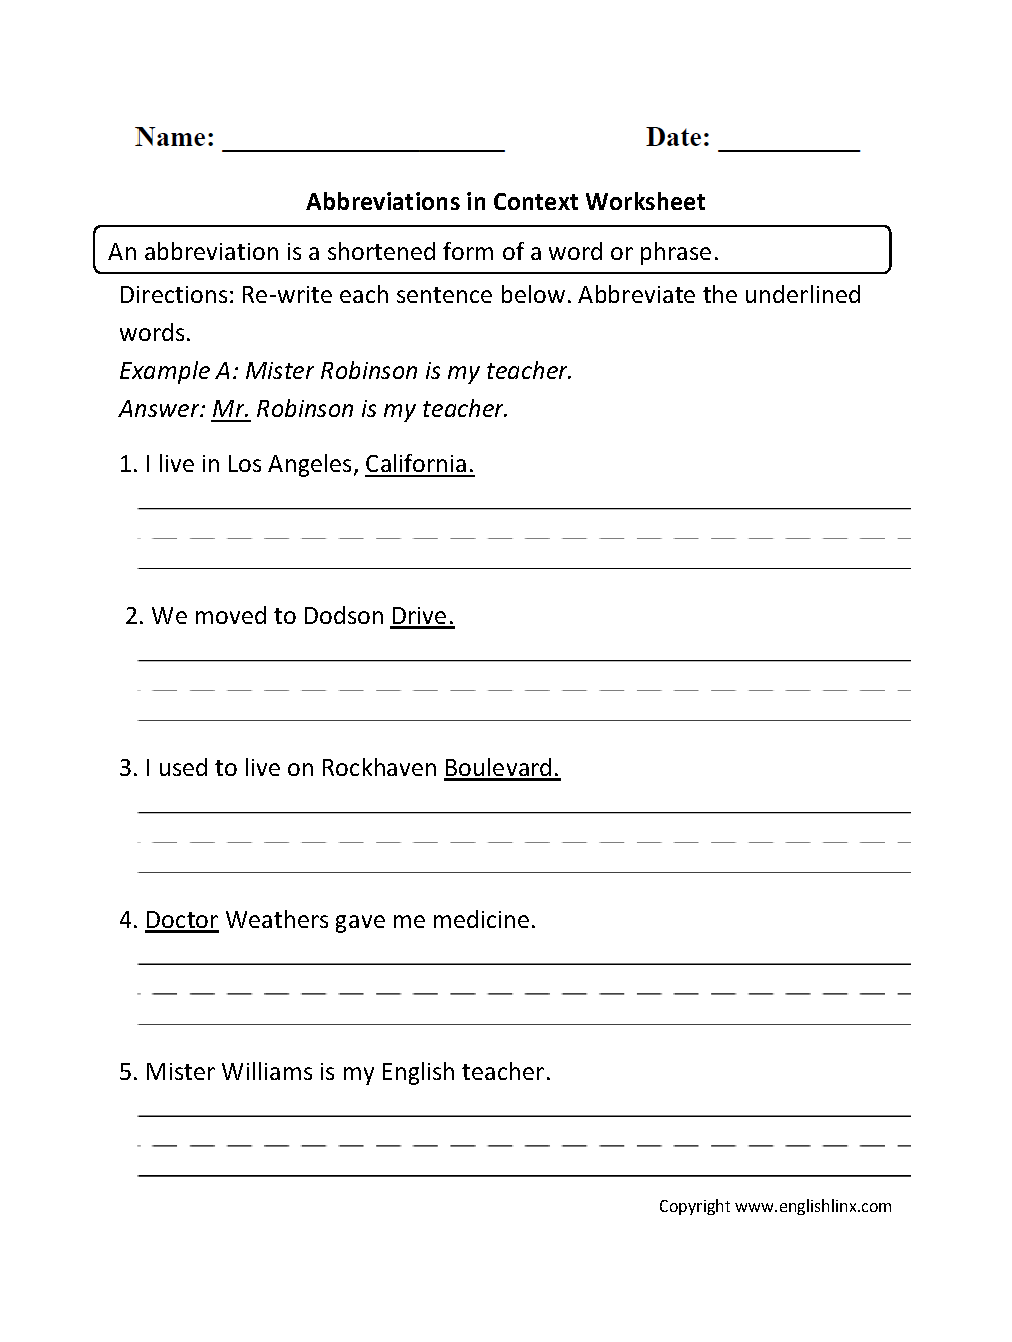 small resolution of Abbreviations in Context Worksheet   2nd grade worksheets